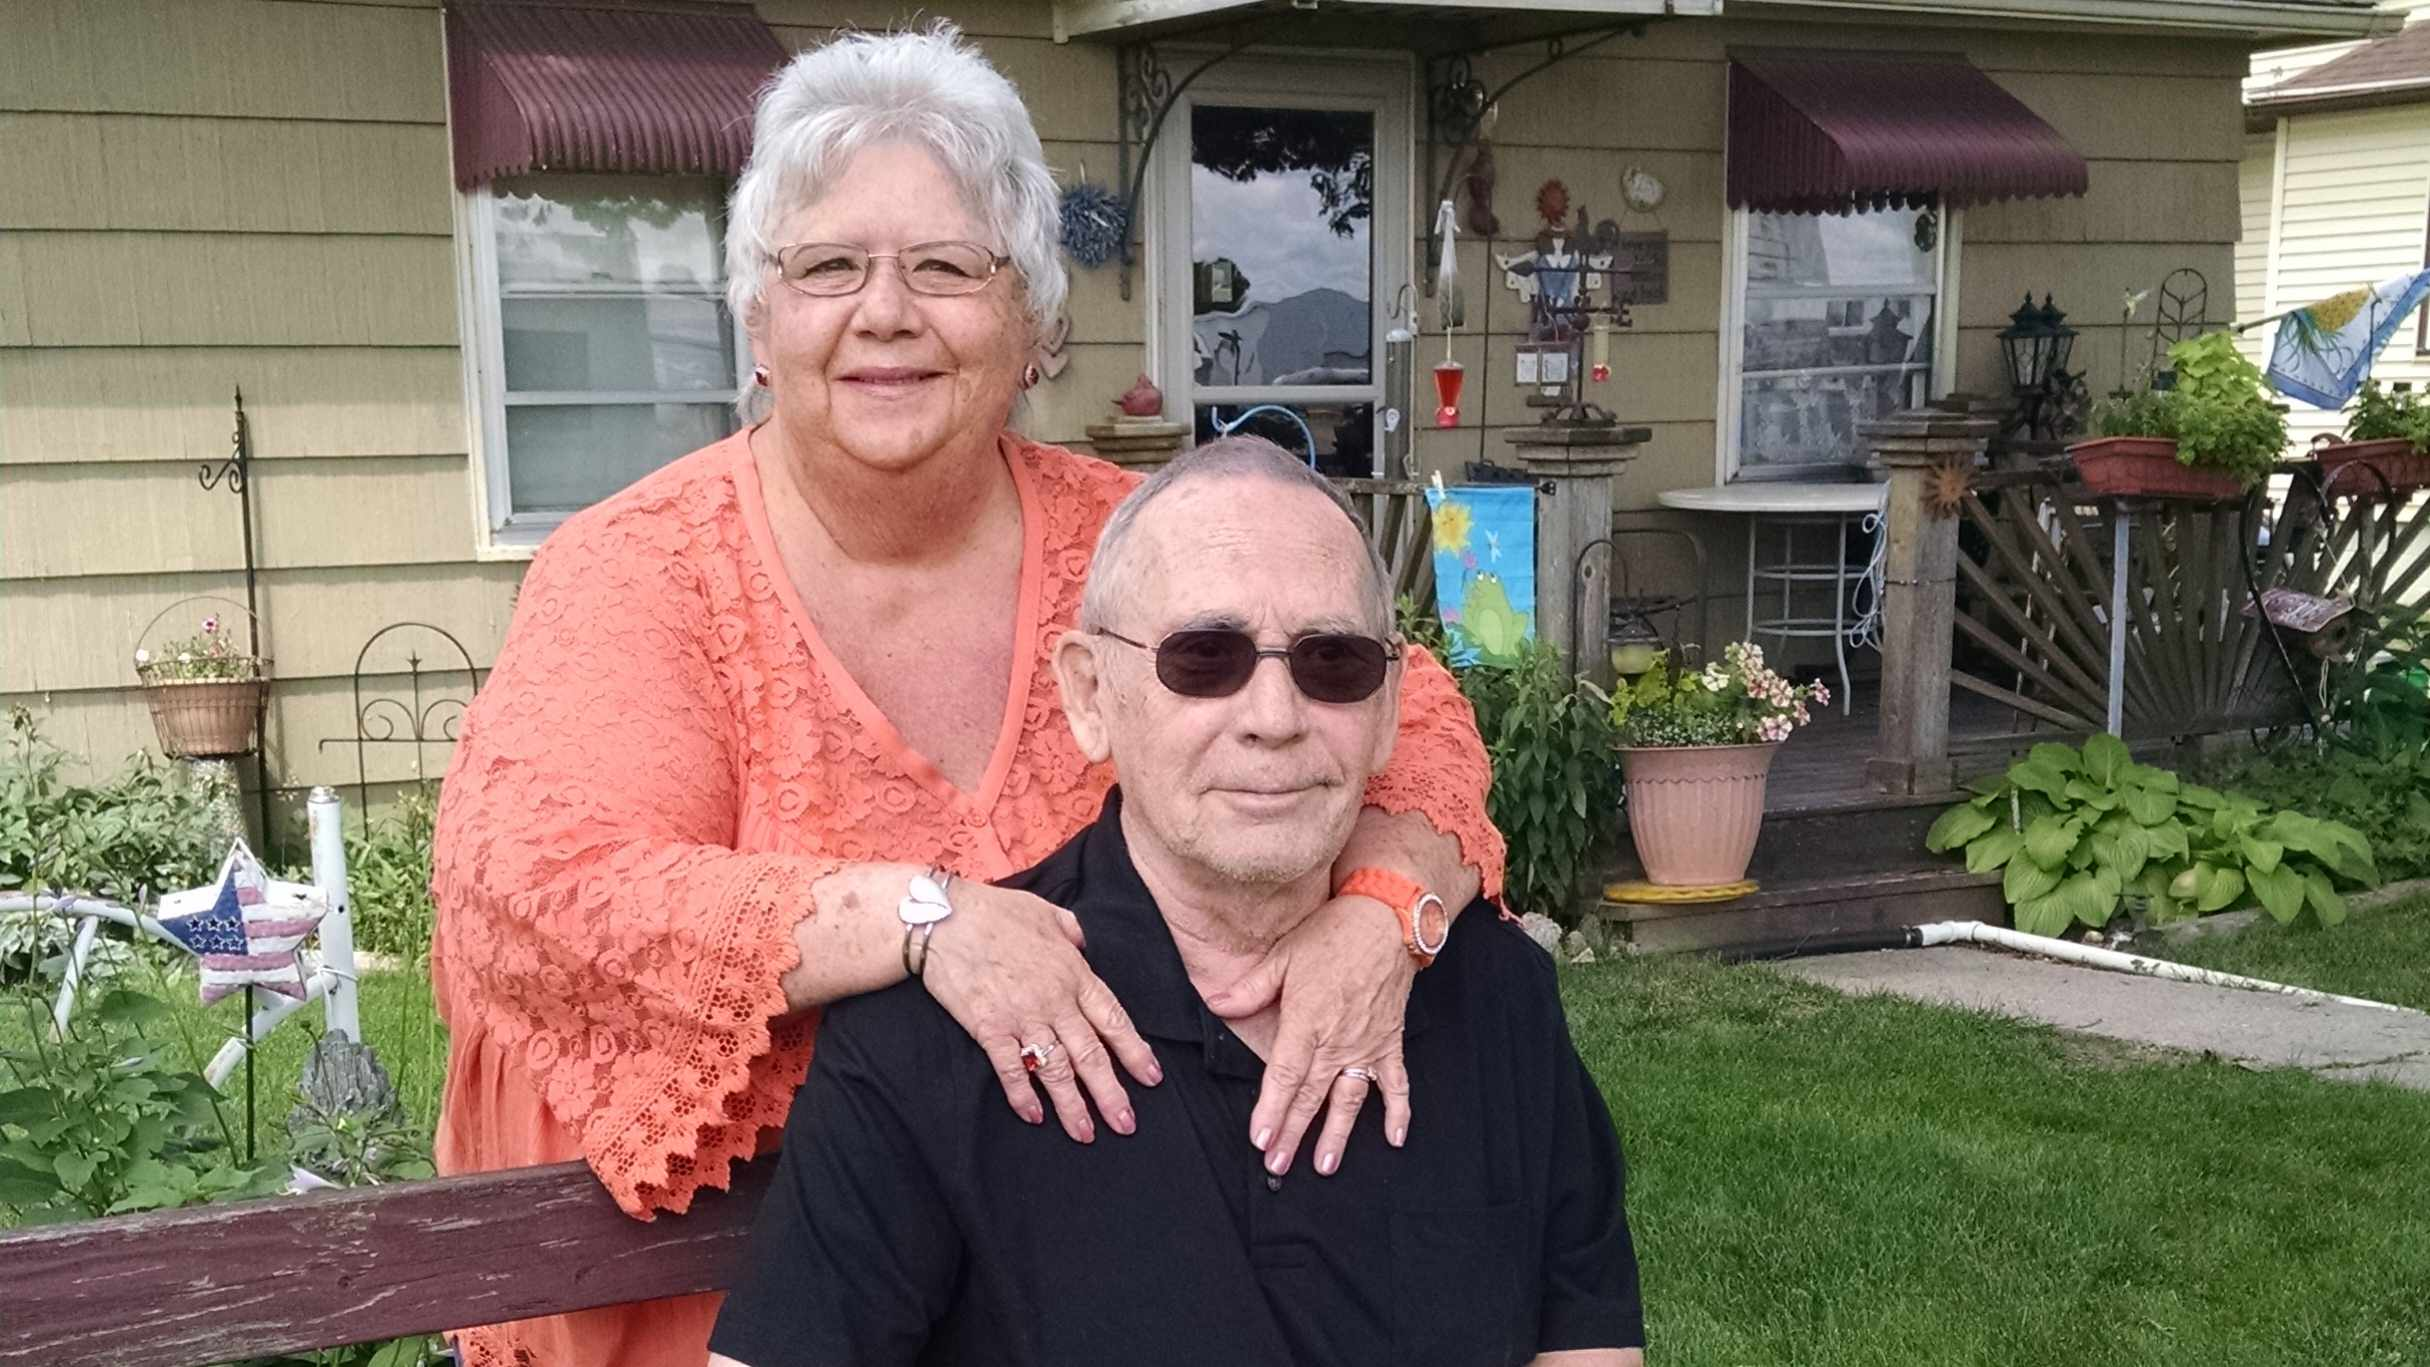 aortic aneurysm patient pictured with his wife outside their home 16x9